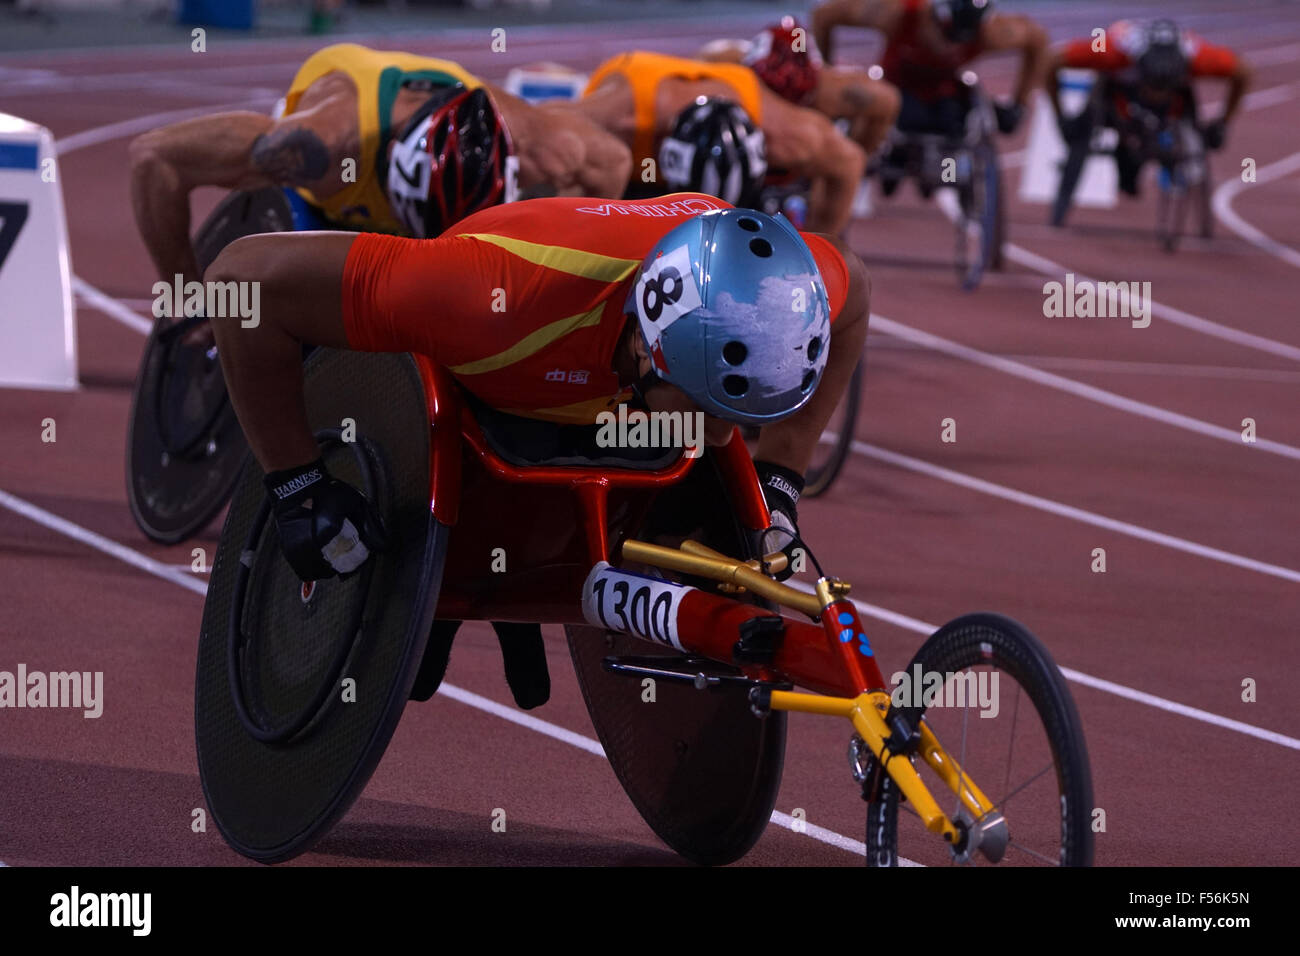 Doha, Qatar. 28th Oct, 2015. Event Overview - Men's 800m T54 - Round 1 Heat 1 to 4 at 2015 IPC Athletics World - Stock Image